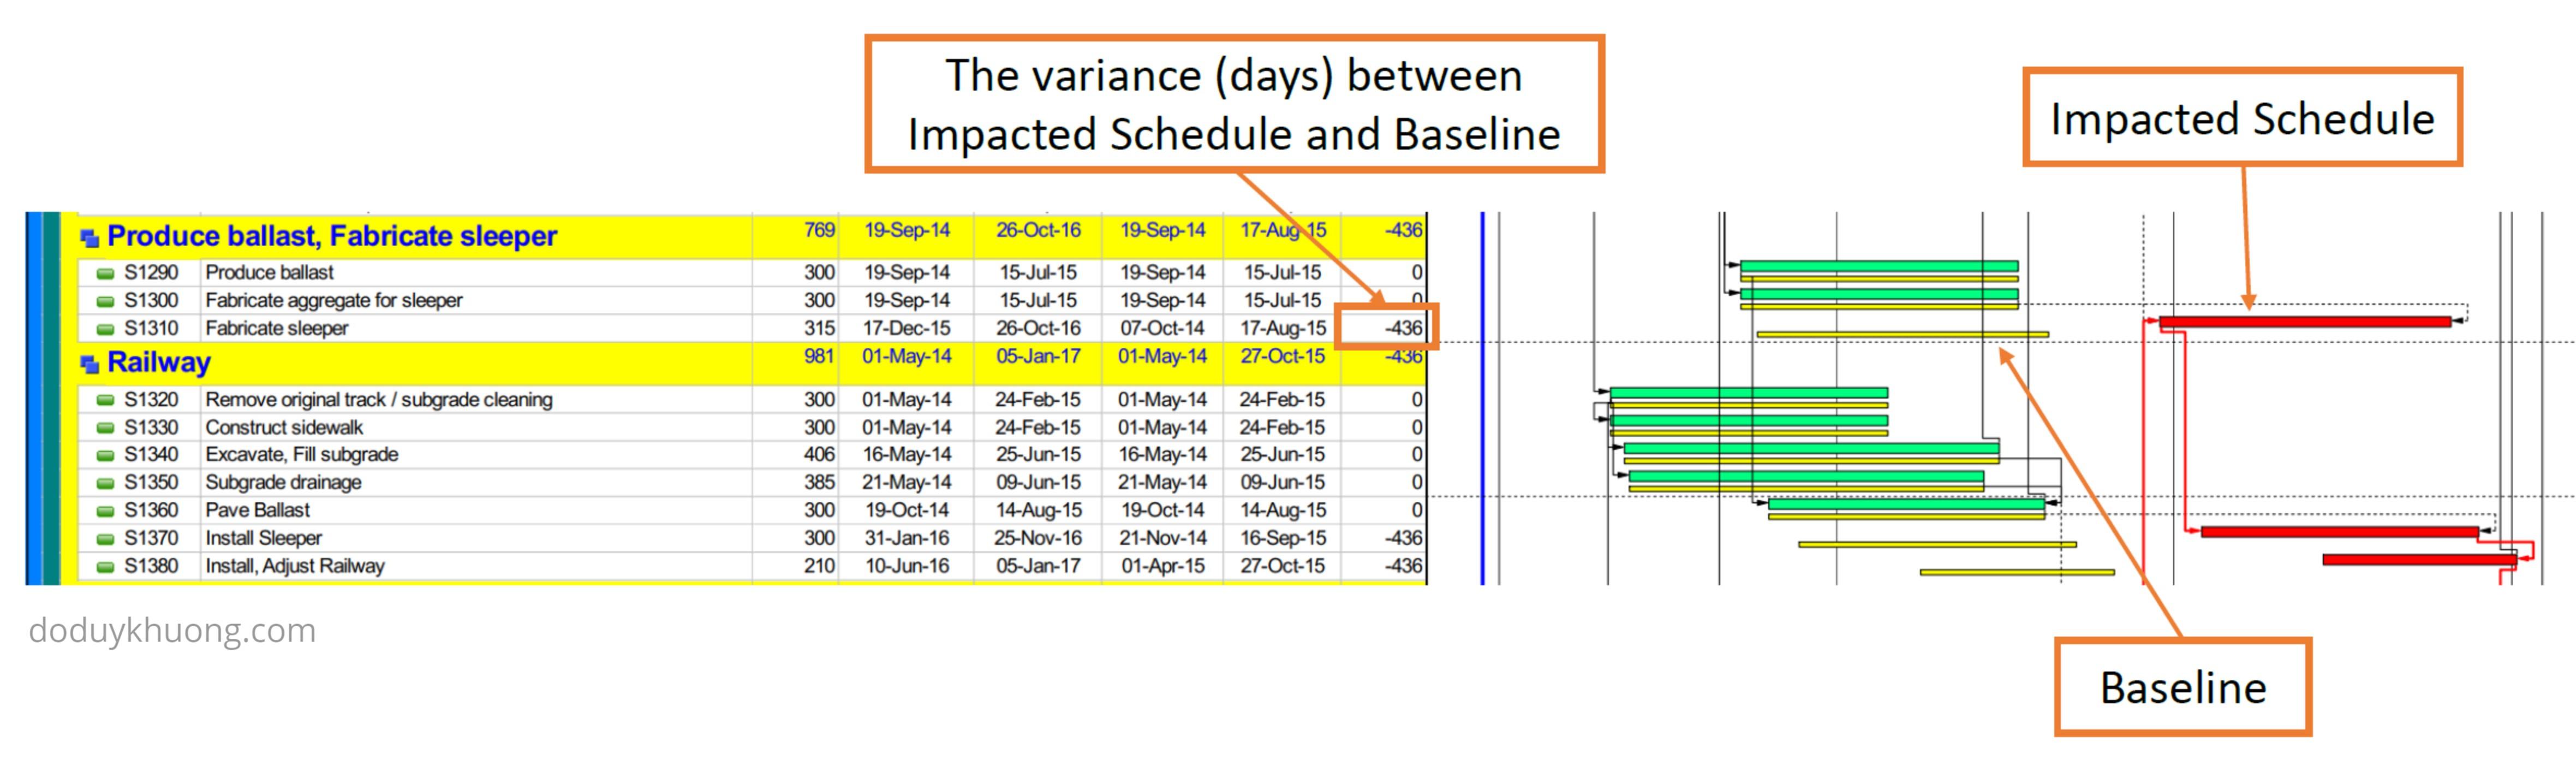 Benefit of using Primavera P6 in Delay Analysis-6: Comparison between the Impacted Schedule and the Baseline Schedule